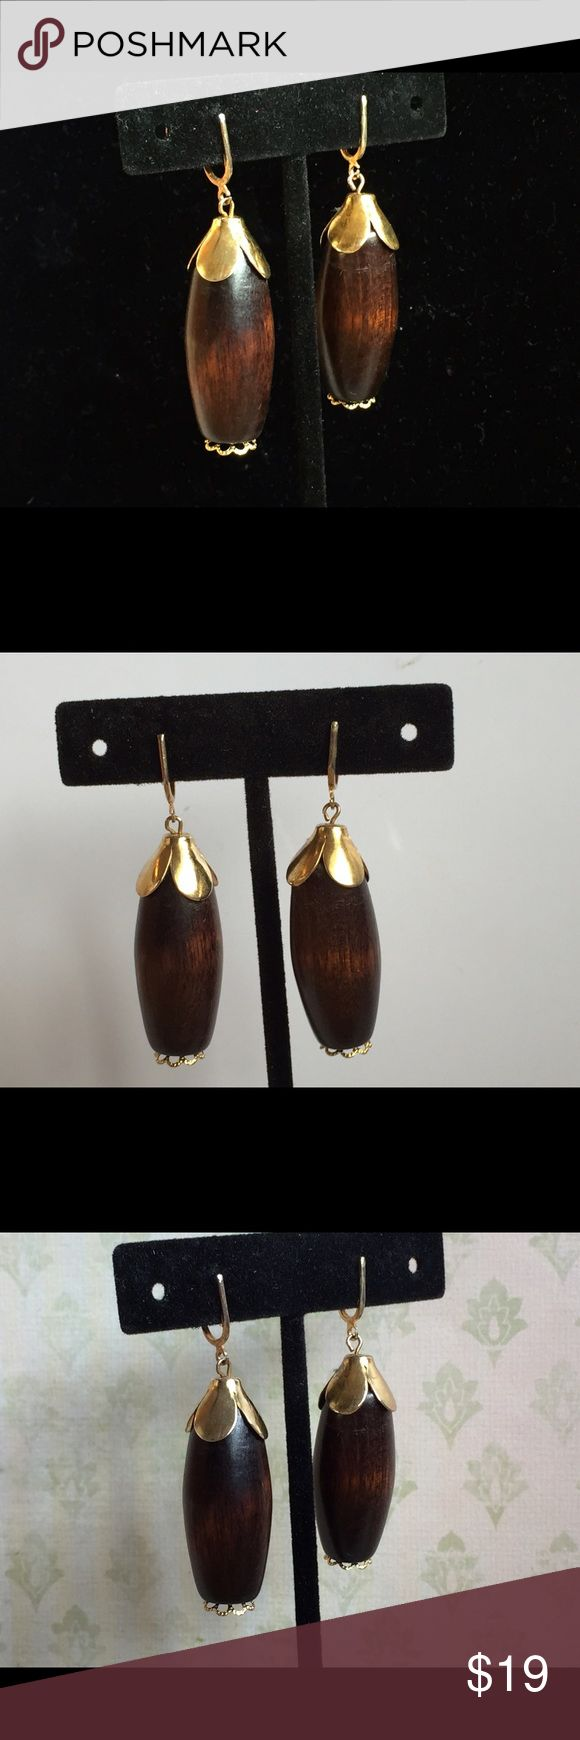 "Classic Vintage Boho Wood Pendant Dangle Earrings For your consideration are these Classic Vintage Boho Wood Pendant Dangle Earrings. Perfect for summer and you can rest assured these are authentic vintage earrings. Totally green for the consumer who values keeping our footprint ""green.""  These measure approximately 2 inches long and 1/2"" wide. Screw clip. Excellent condition. Jewelry Earrings"